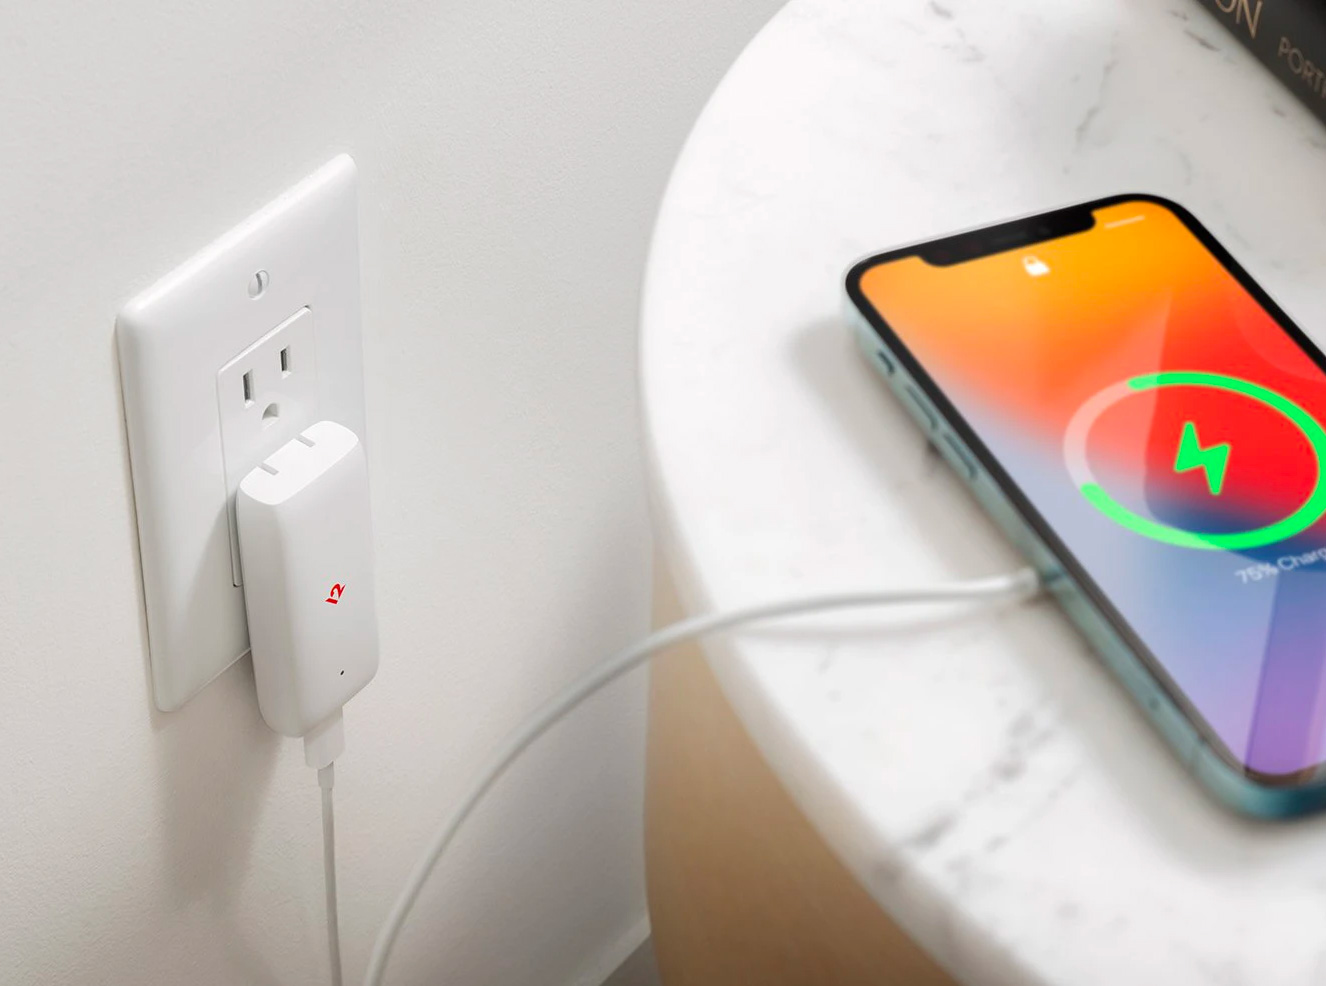 PlugBug Slim is a Space-Saving USB-C Charger at werd.com